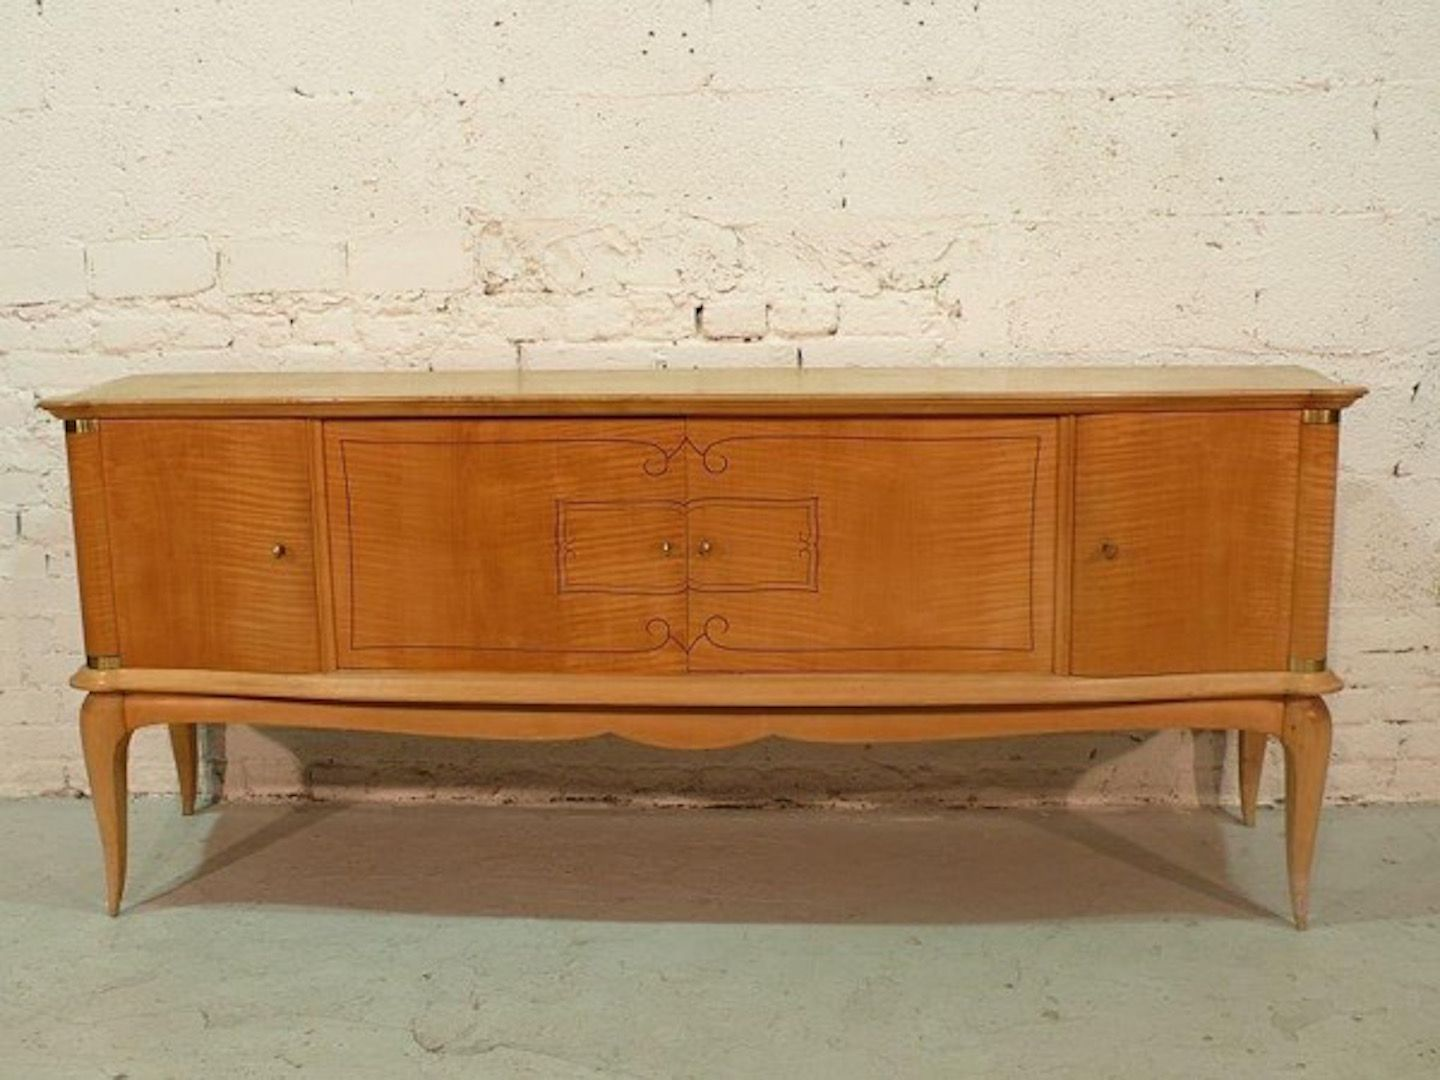 Art deco sideboard by maxime old 1940s for sale at pamono - Deko sideboard ...